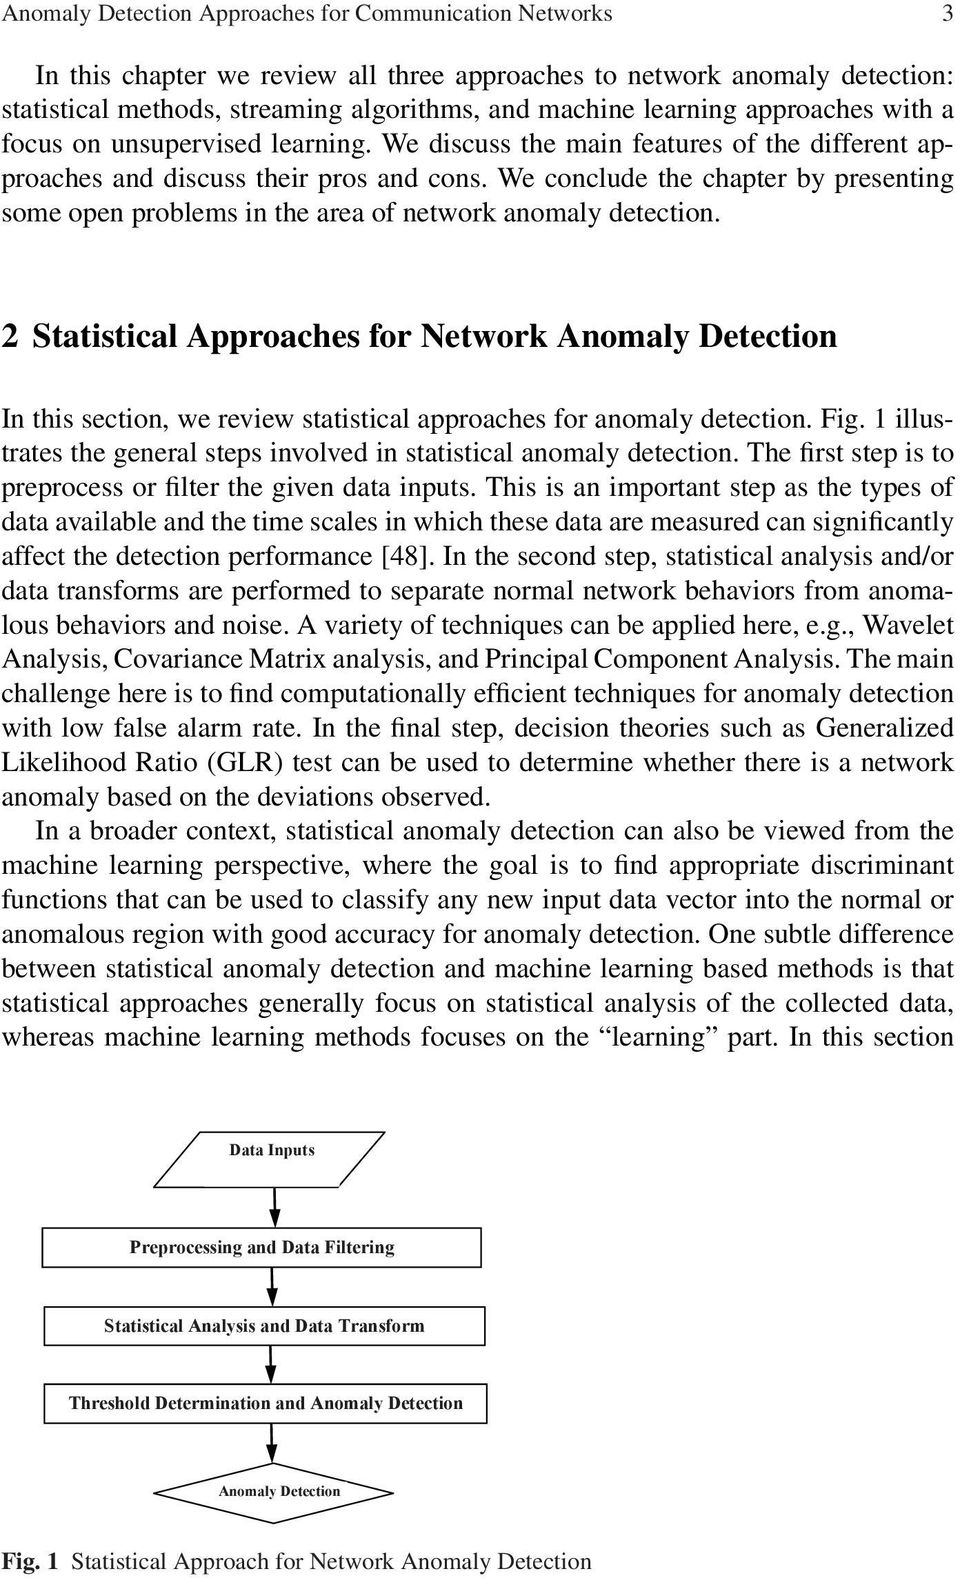 We conclude the chapter by presenting some open problems in the area of network anomaly detection.